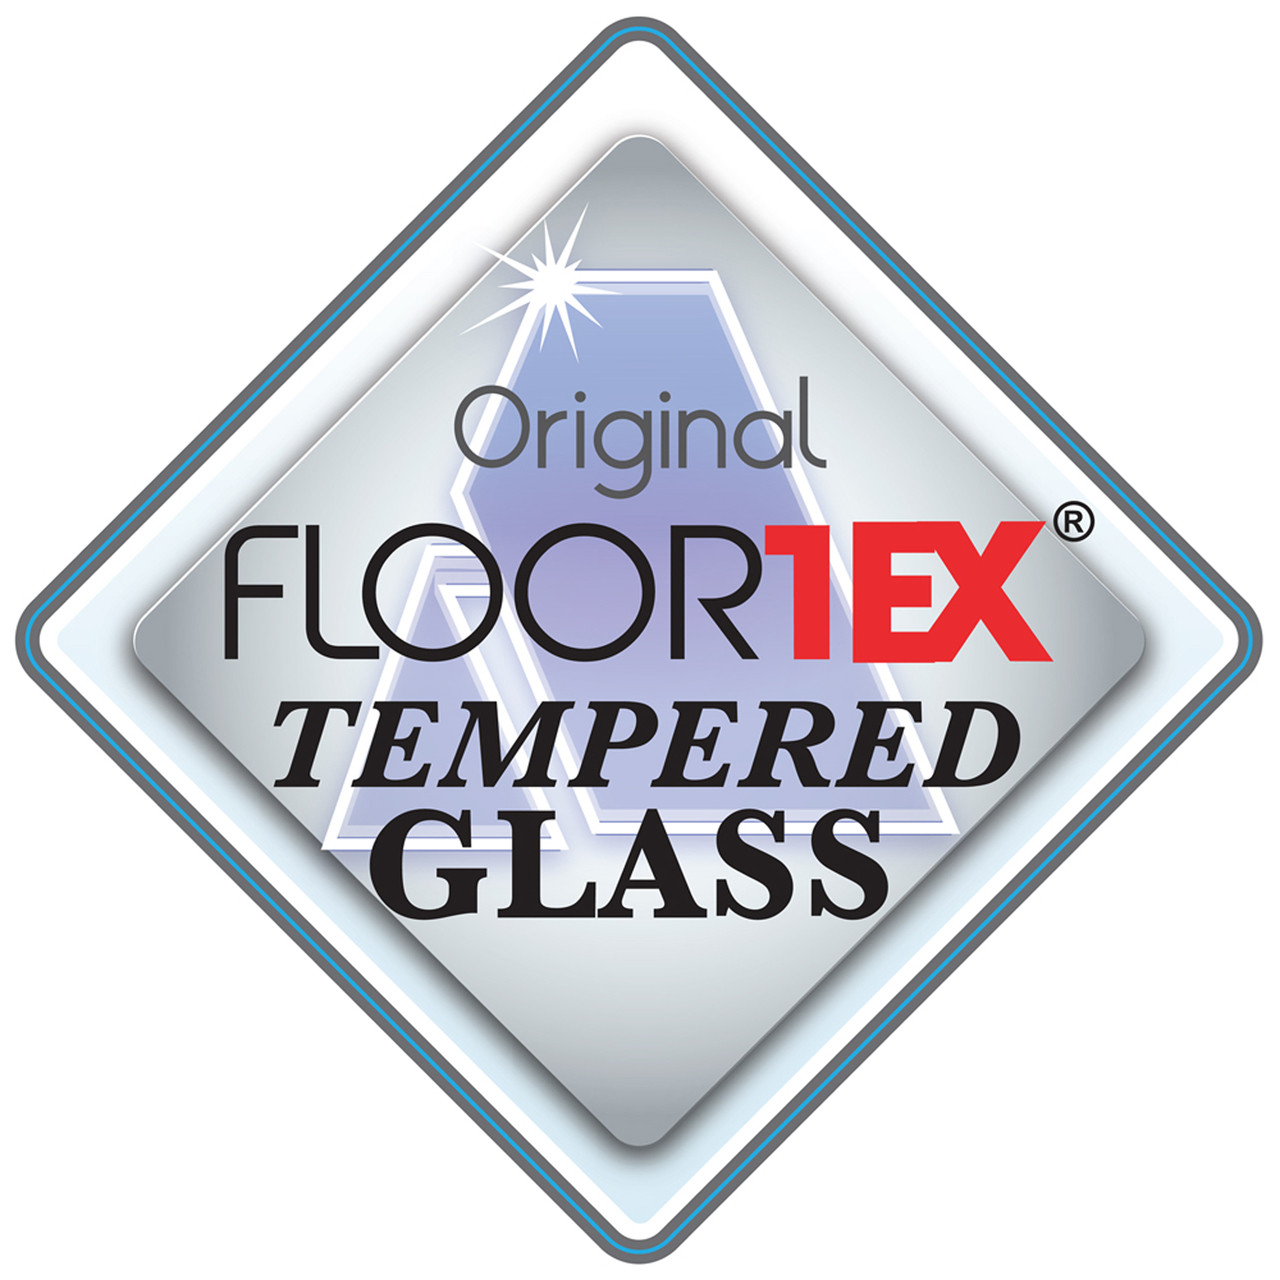 Floortex Cleartex Big Amp Tall Megamat For Hard Floors Amp All